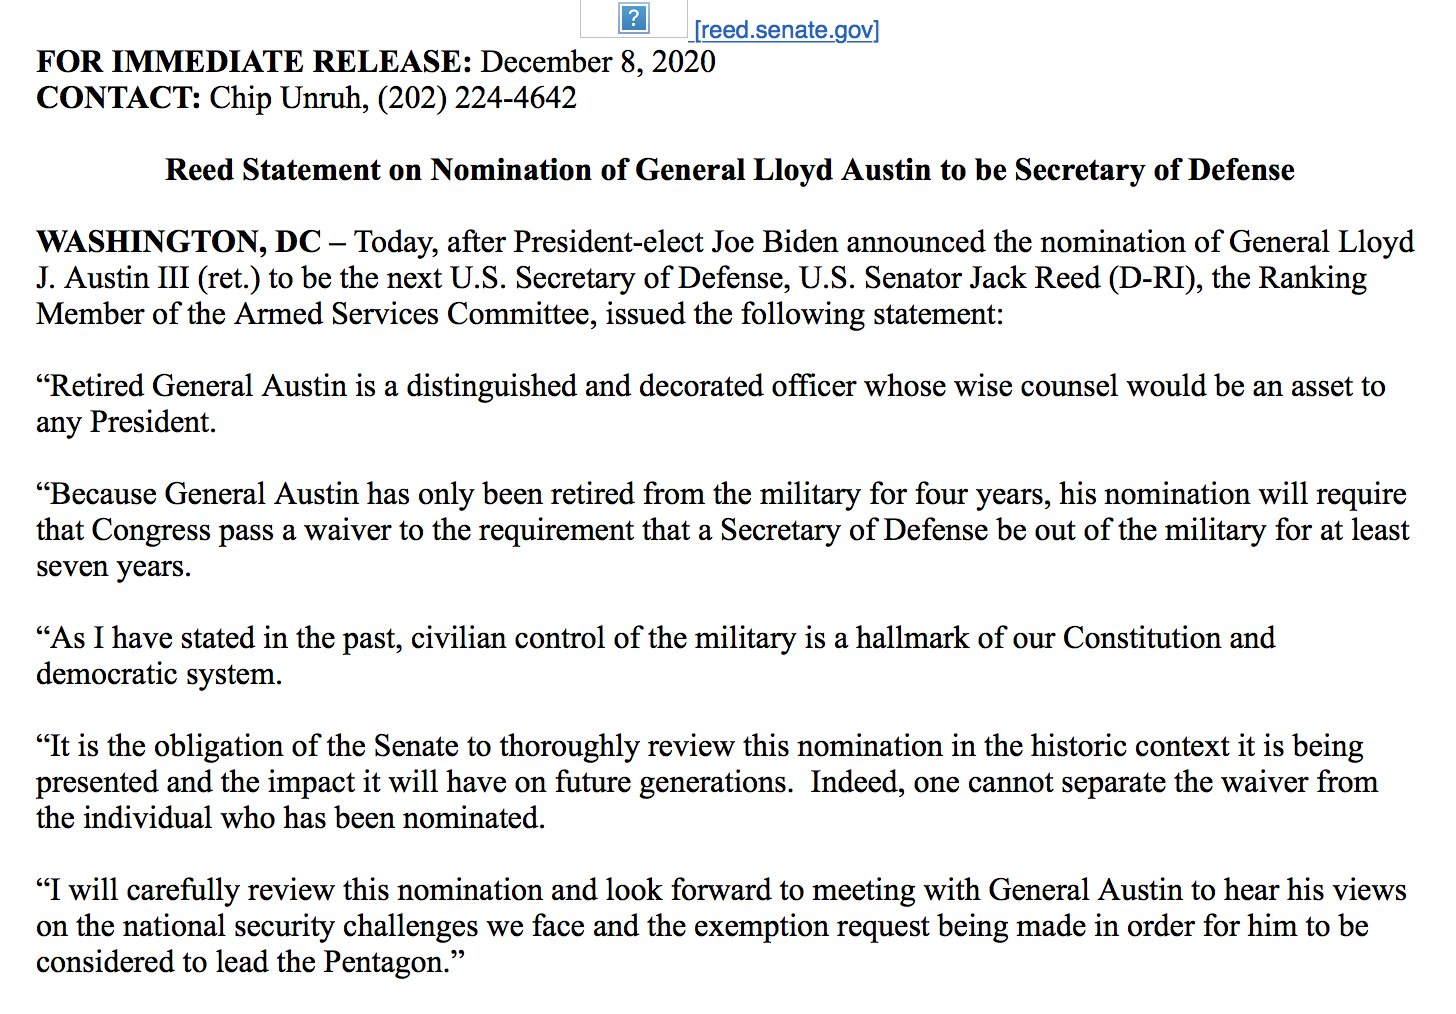 John Hudson On Twitter Jack Reed Keeping An Open Mind On A Waiver For Gen Austin One Cannot Separate The Waiver From The Individual Who Has Been Nominated I Will Carefully Review